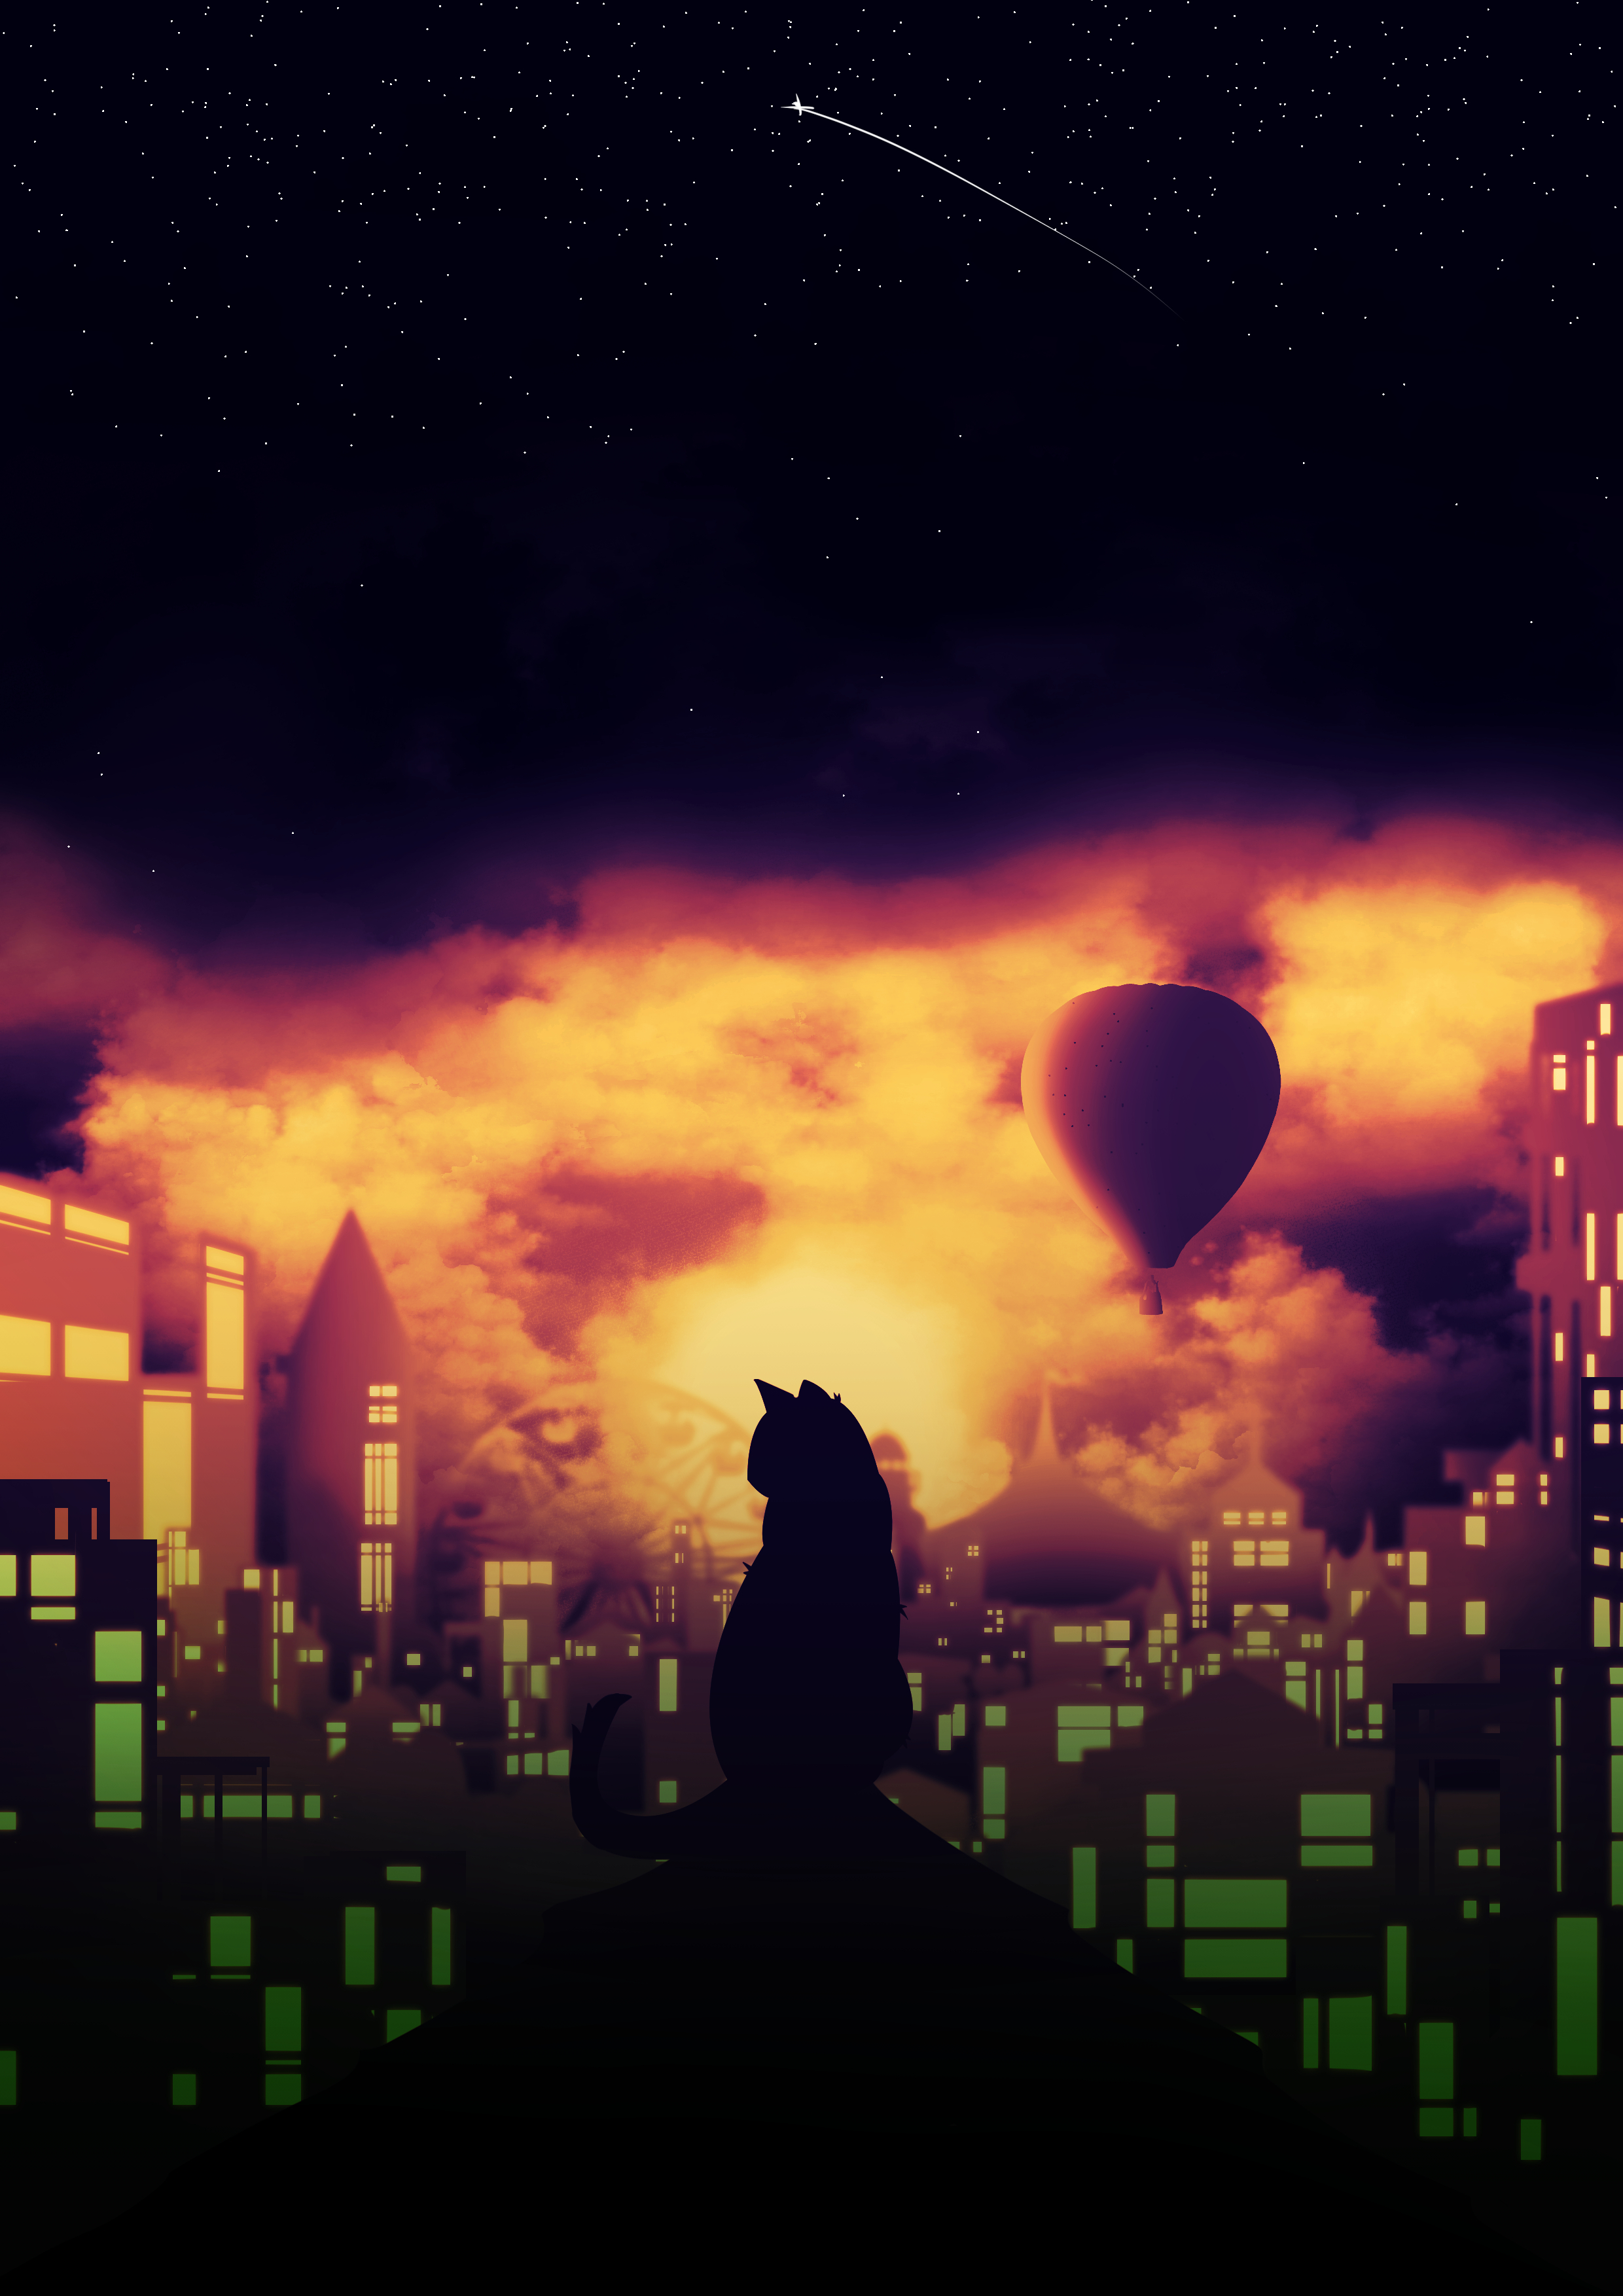 the cat at night 2